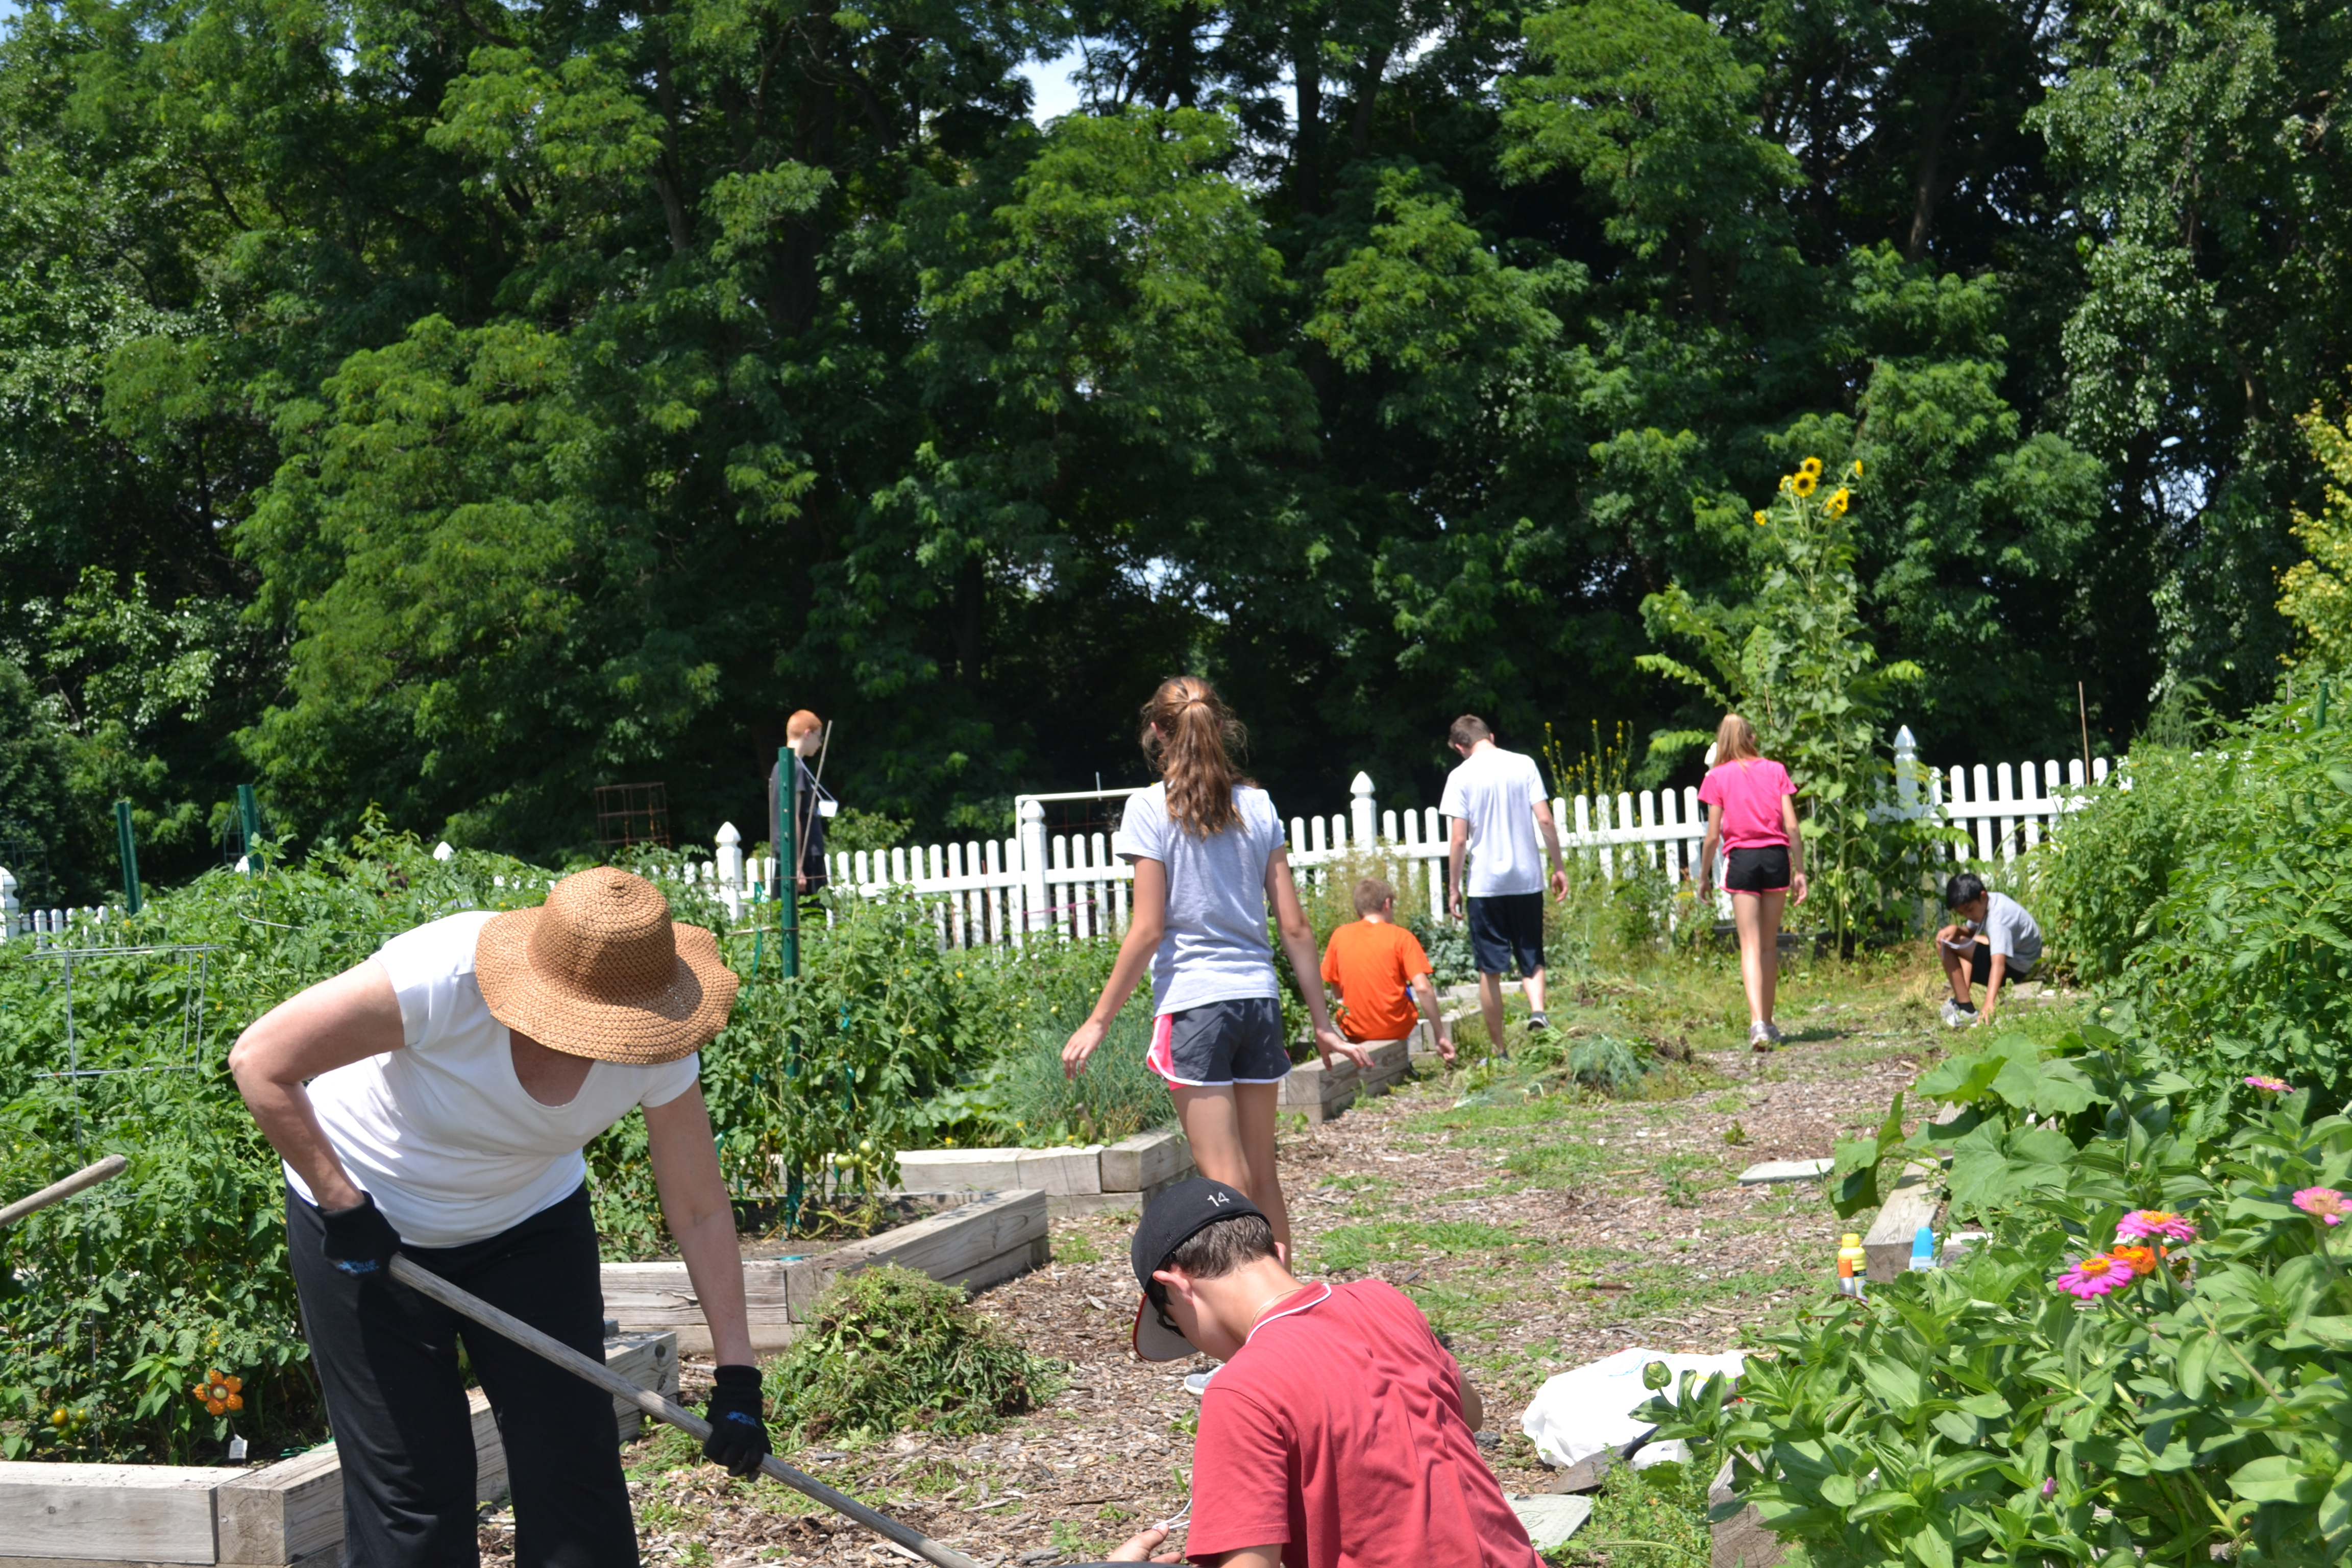 Giving Garden Continues to Provide Healthy Vegetables for Families